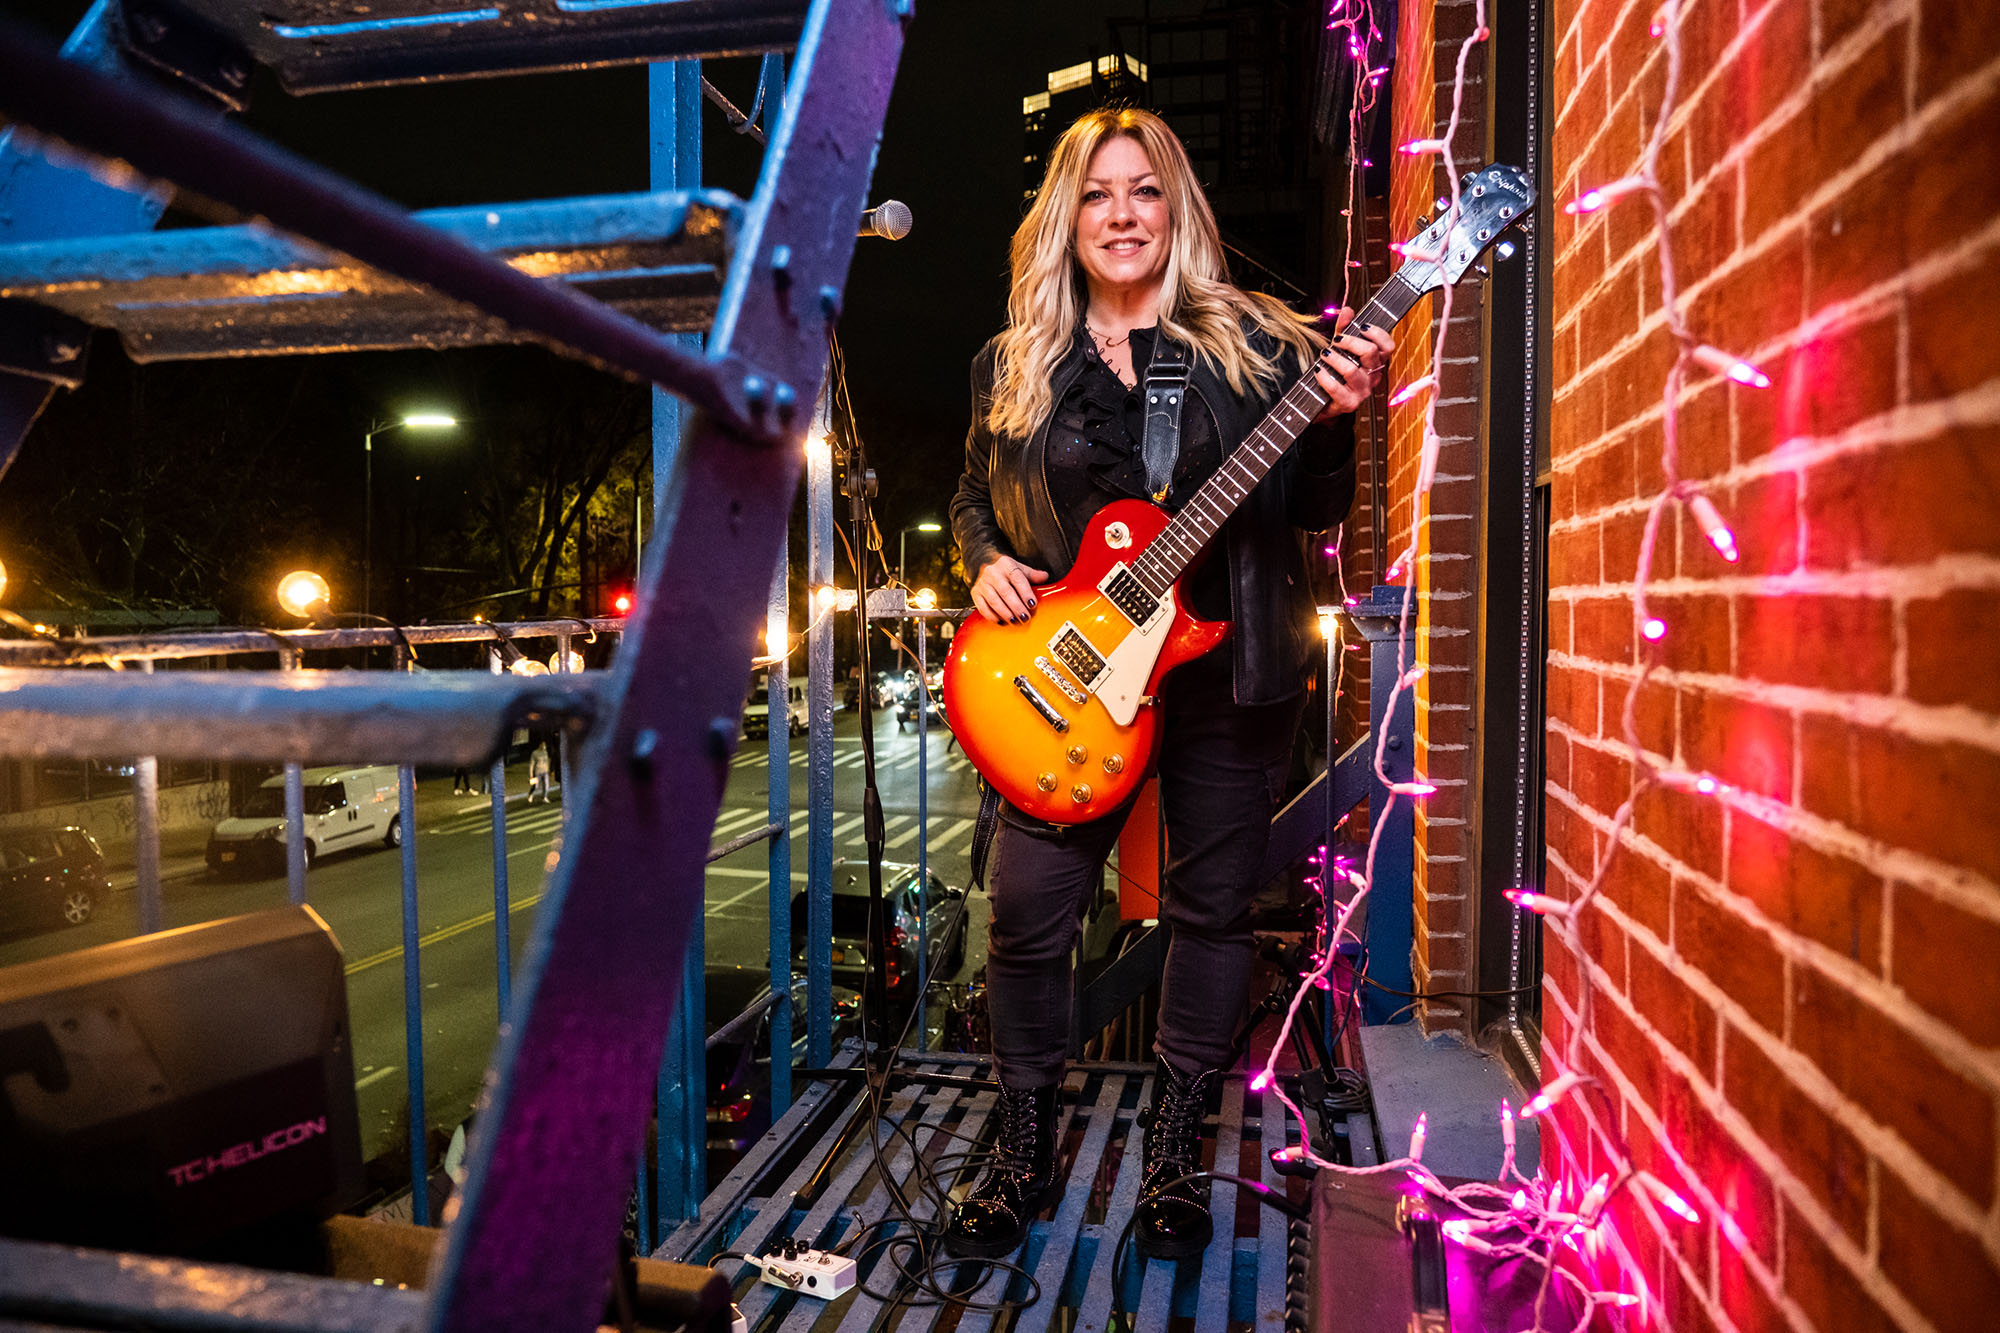 How an NYC guitarist turned her fire escape into a wild music venue